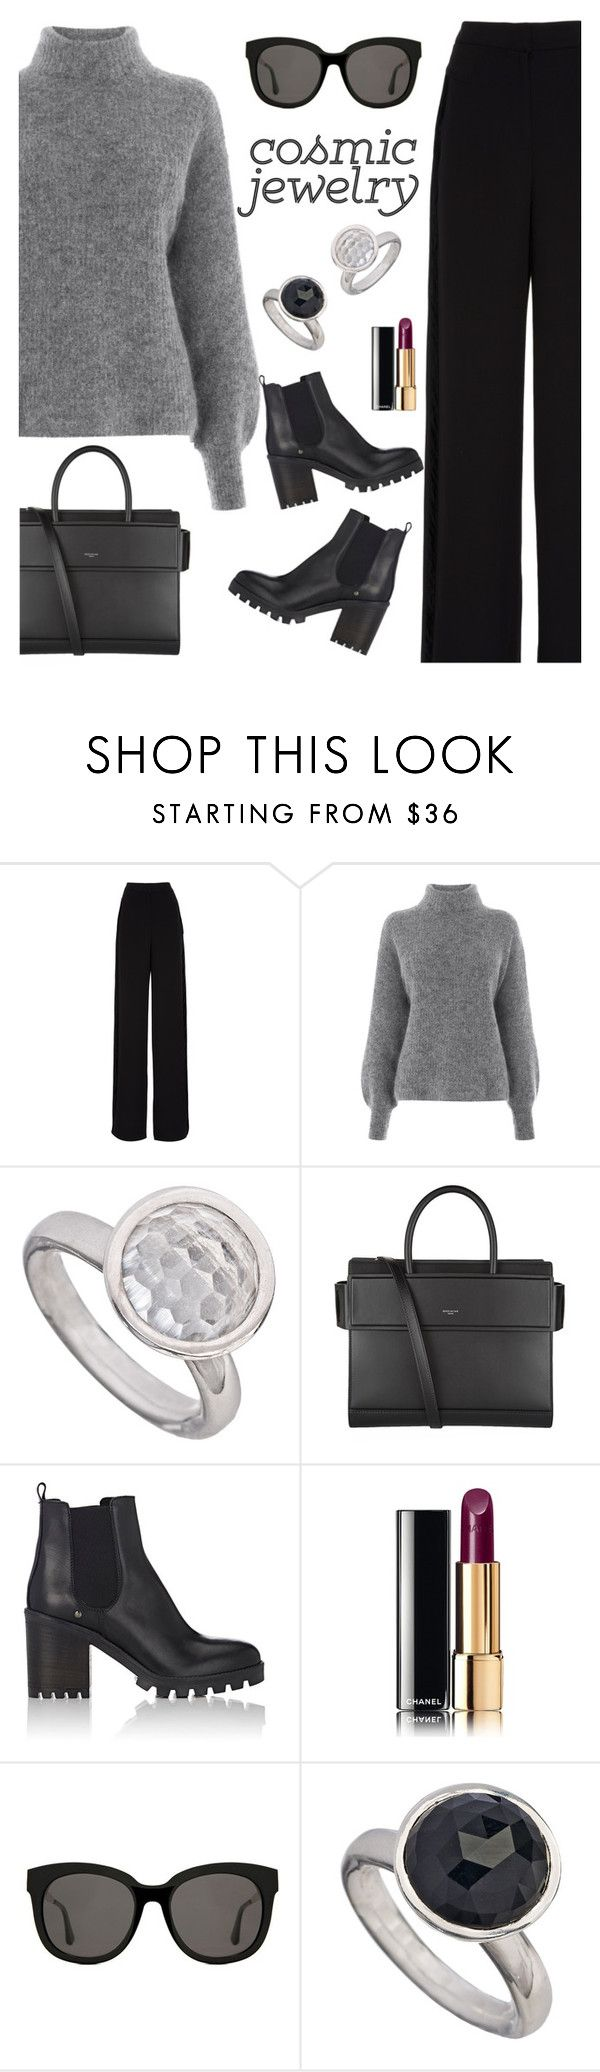 """""""Cosmic Jewelry"""" by rasa-j ❤ liked on Polyvore featuring Rochas, Warehouse, Givenchy, Barneys New York, Chanel, Gentle Monster, womensFashion and cosmicjewelry"""